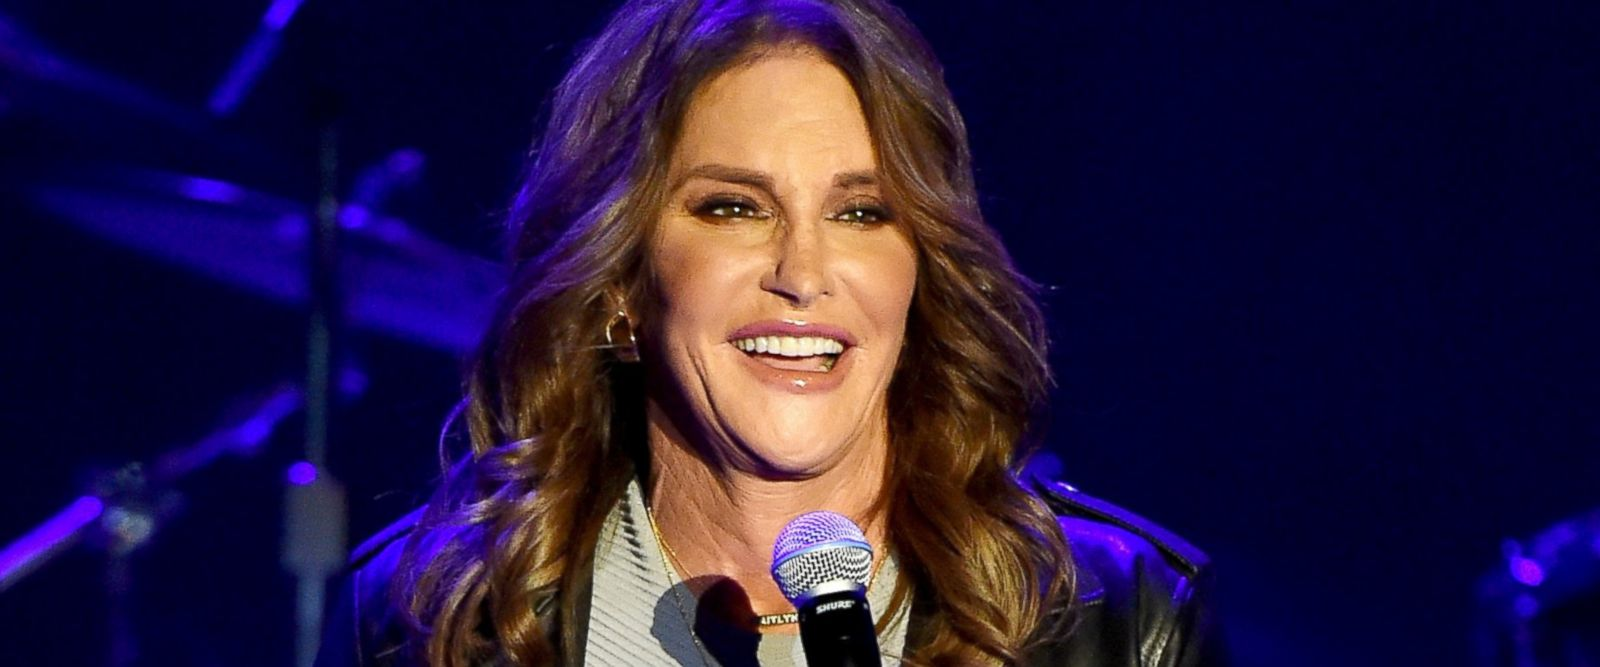 Marvelous Caitlyn Jenner Had Her Facial Hair Removed 3 Decades Ago Abc News Hairstyle Inspiration Daily Dogsangcom